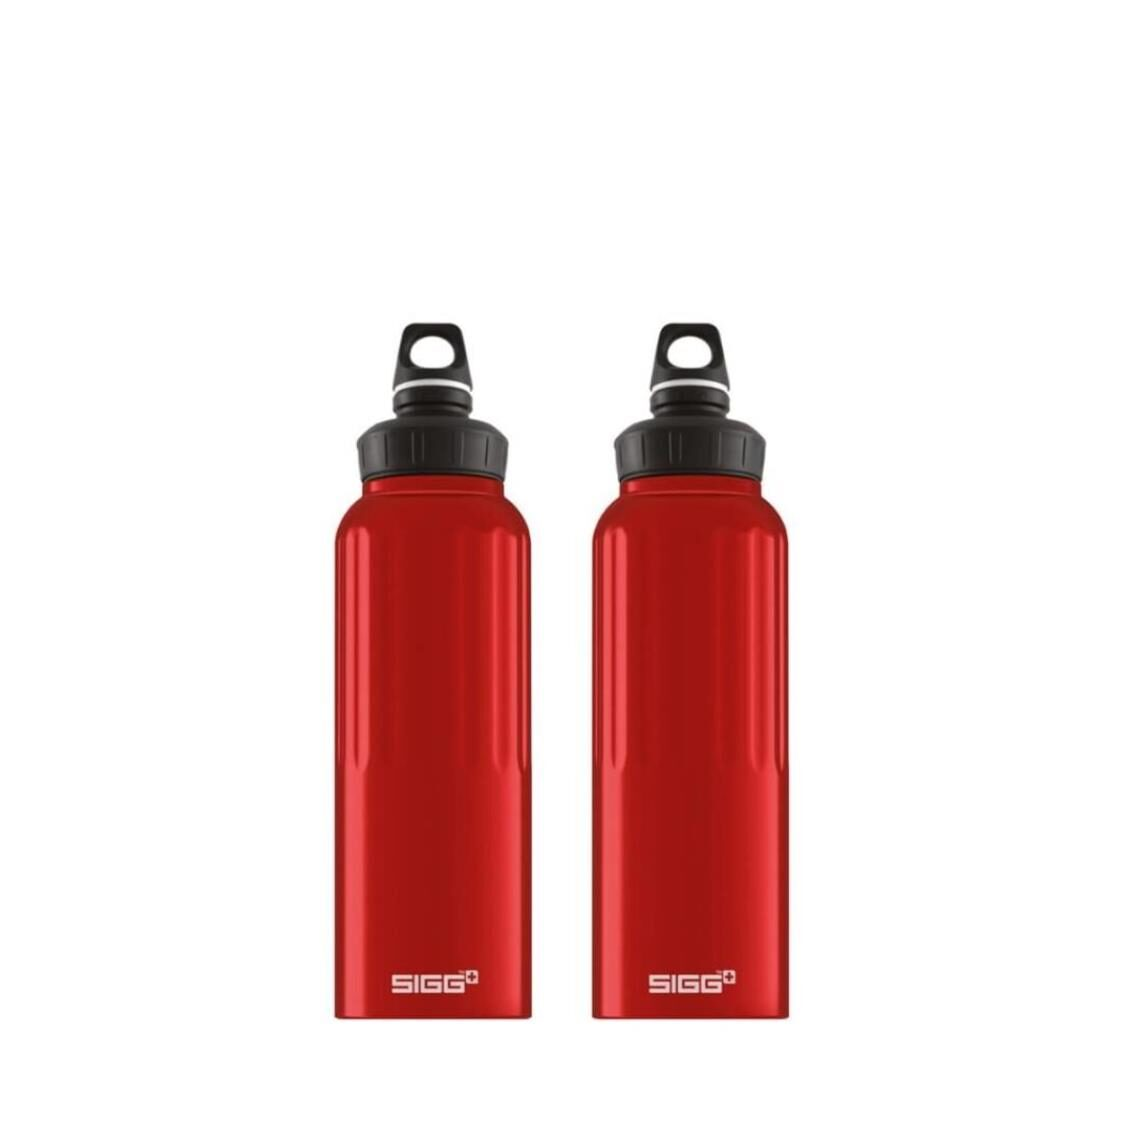 Sigg 2-pc Set 15L Traveller Wide Mouth Water Bottle - Red 852600 x 2